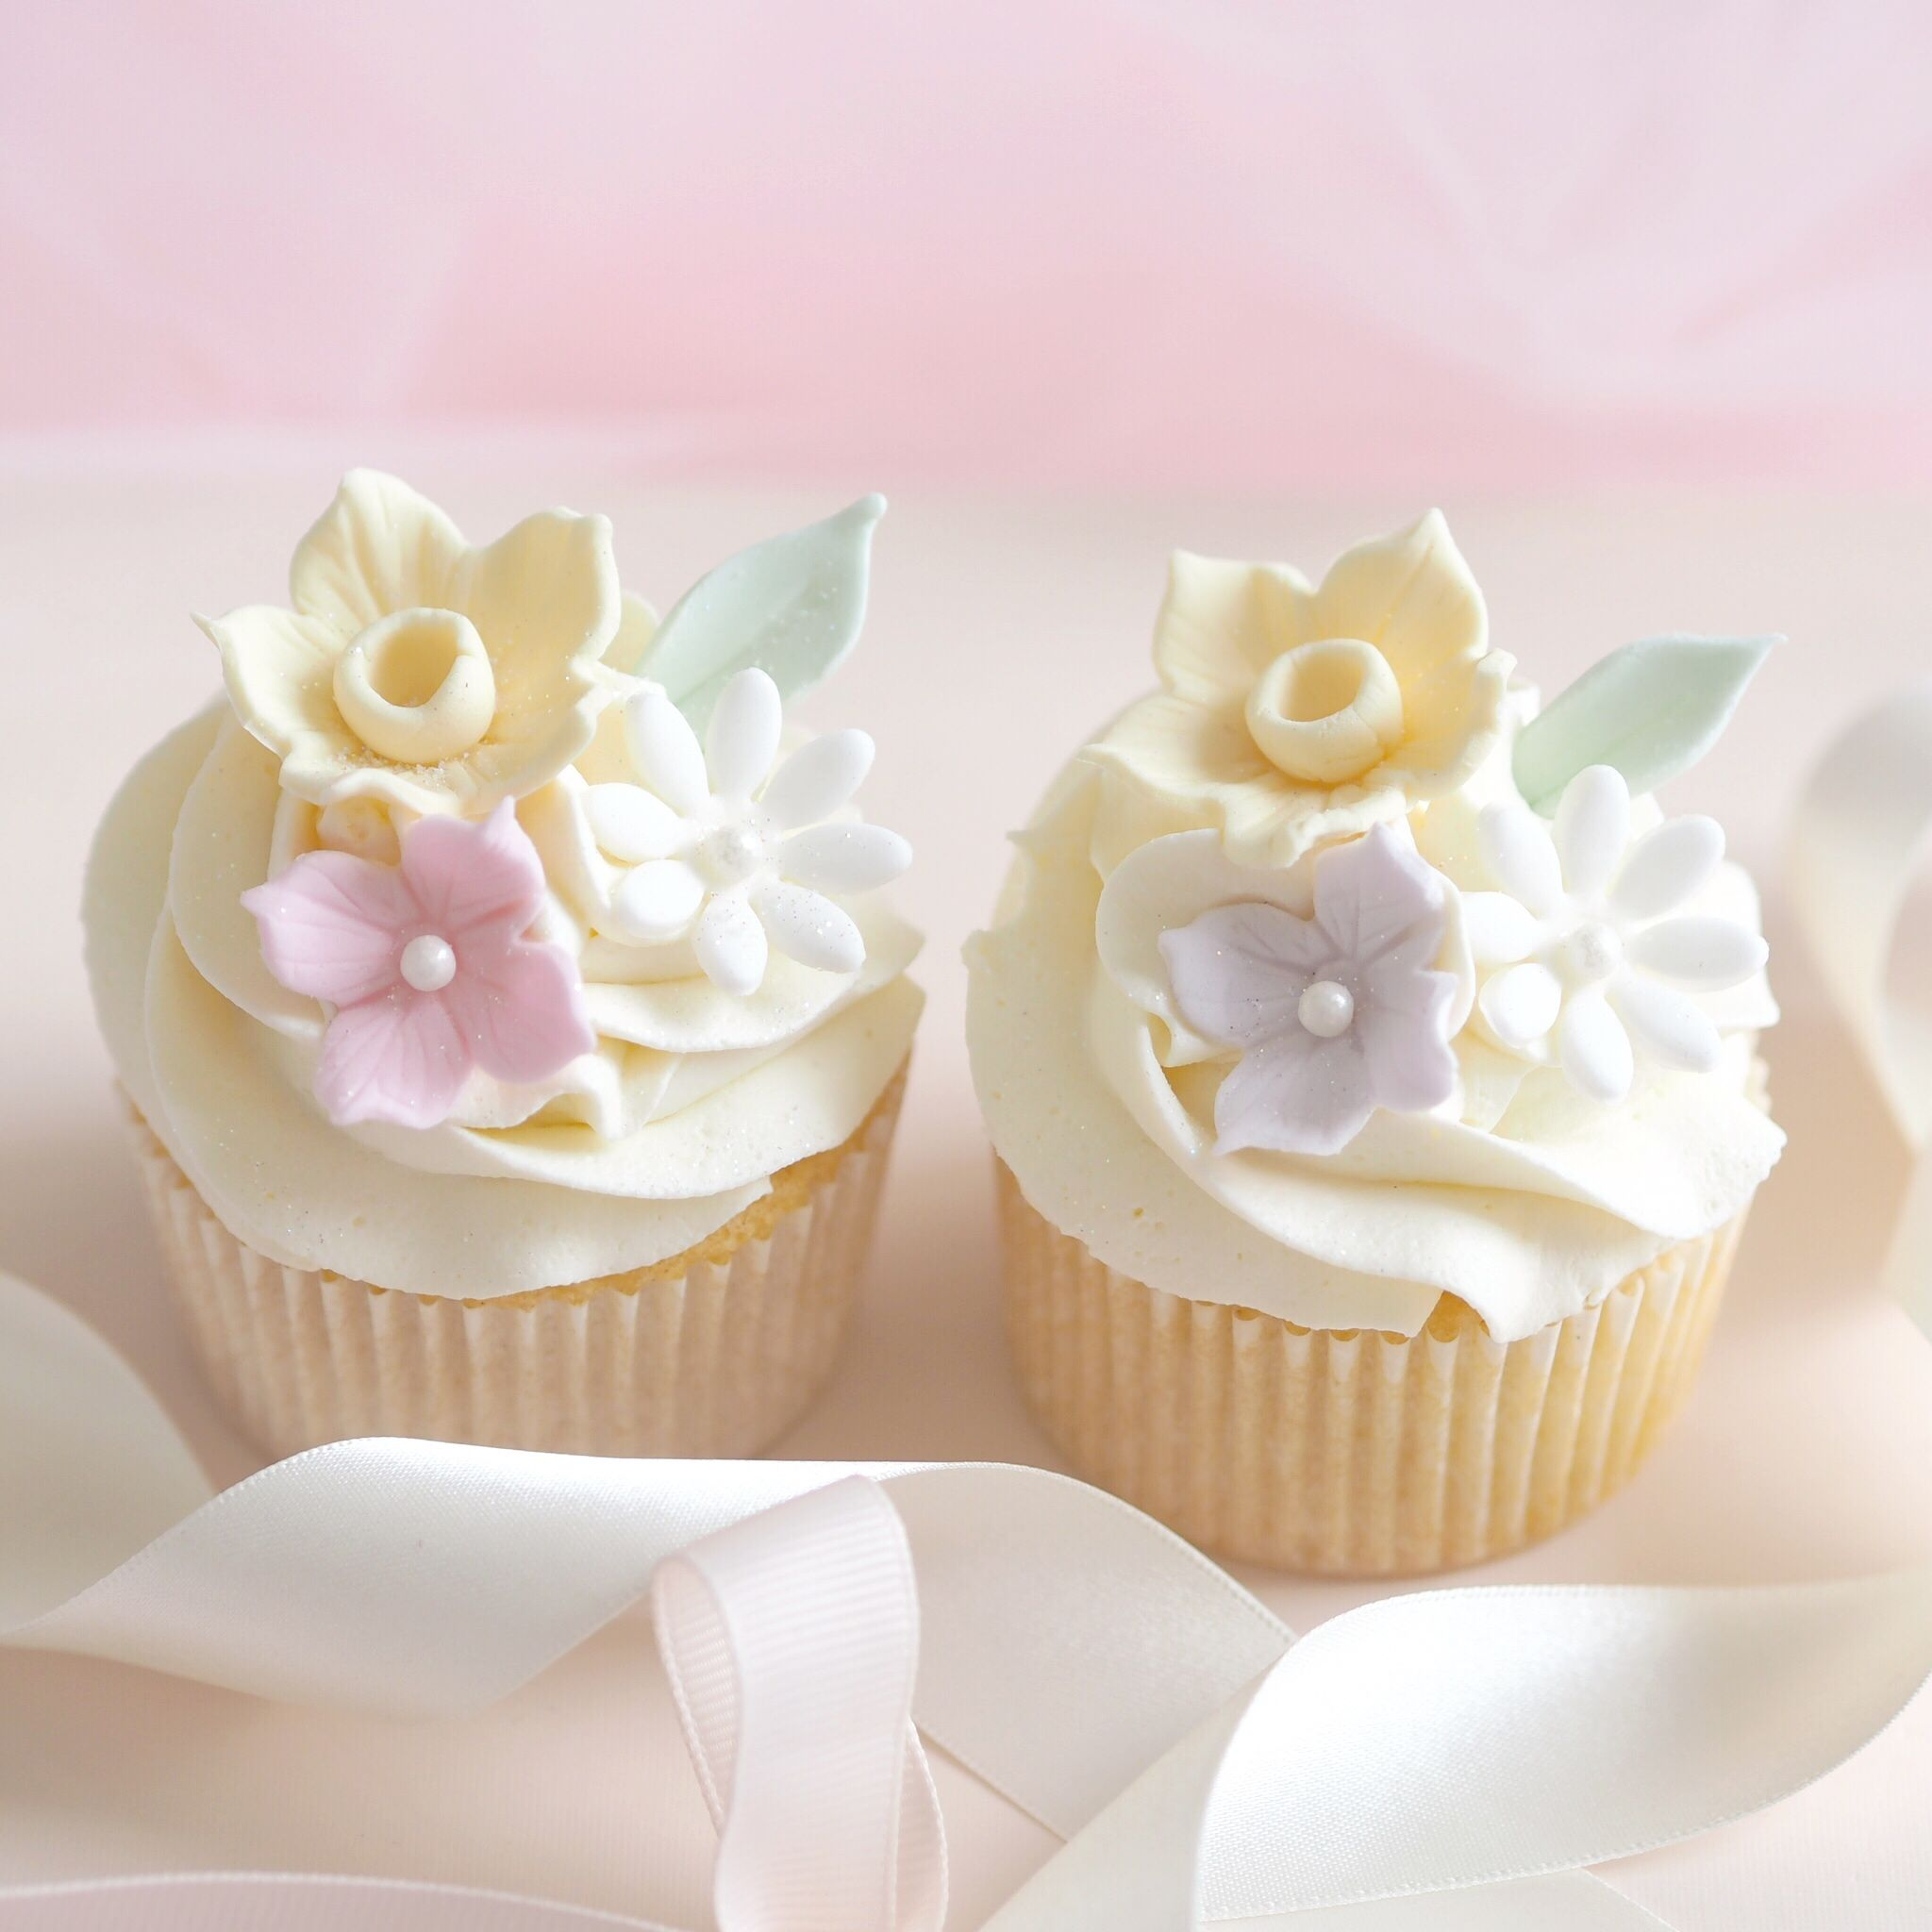 Six Ideas For Your Easter Baking, Floral Spring Cupcakes | Love Catherine